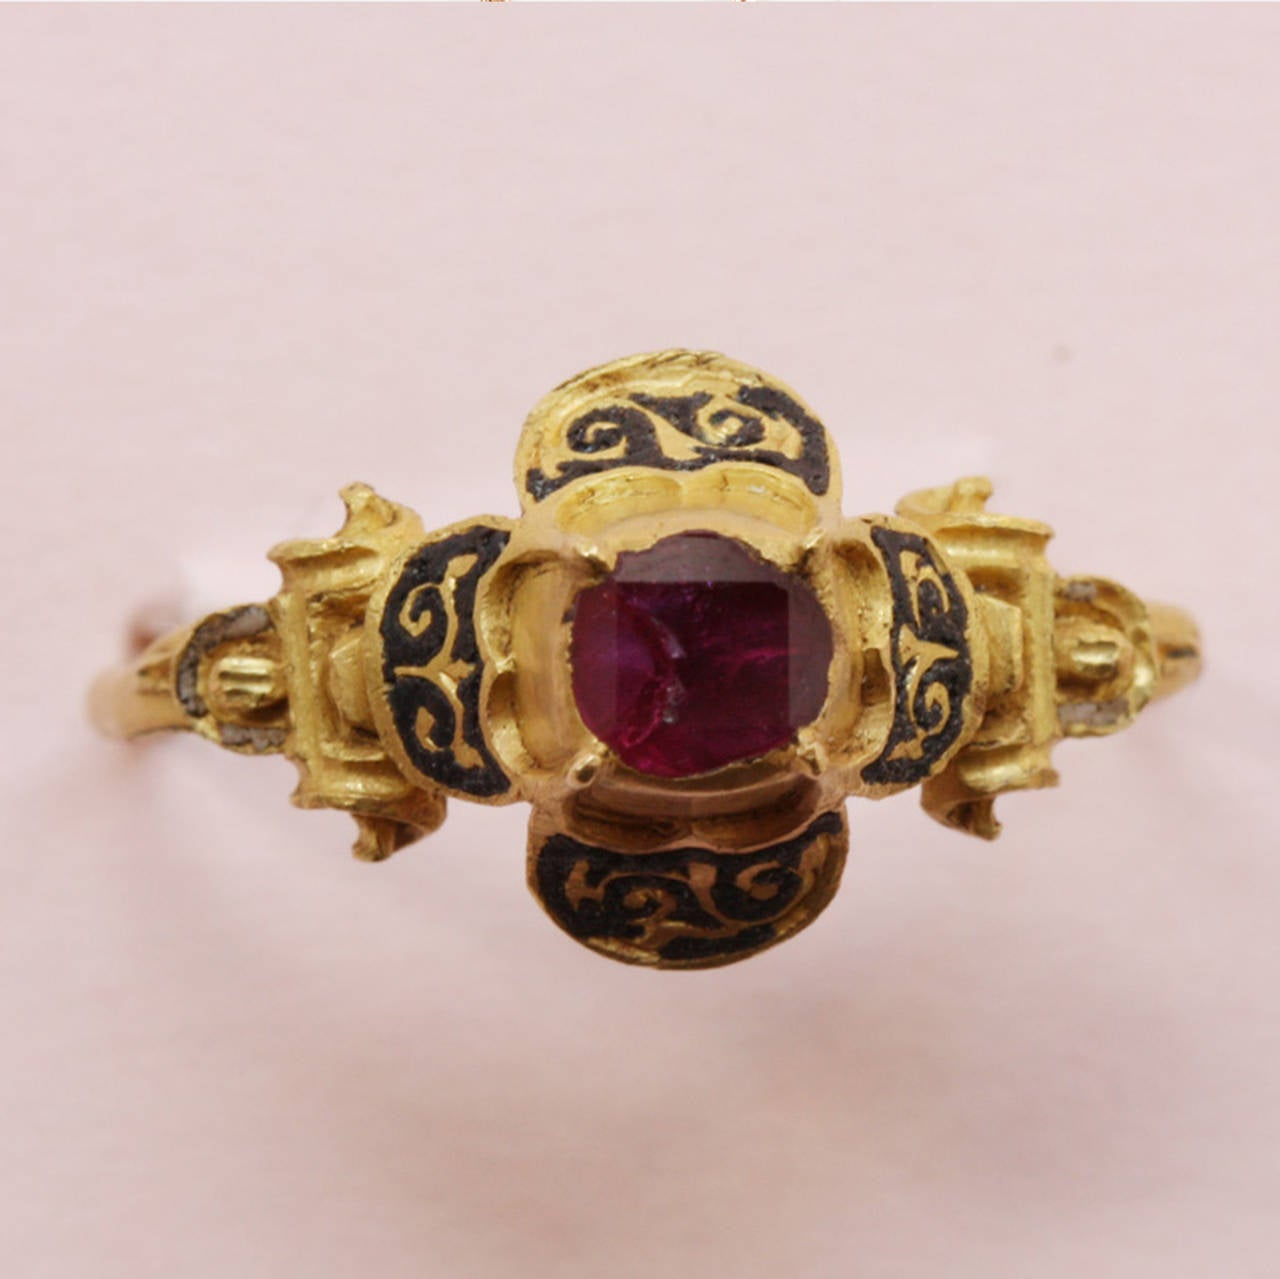 A high carat gold quatrefoil ring, the hoop merging with shoulders chased with volutes, with traces of white enamel, supporting a high quatrefoil bezel set with a table cut ruby, large black enamelled petals with foliate gold ornaments, 16th